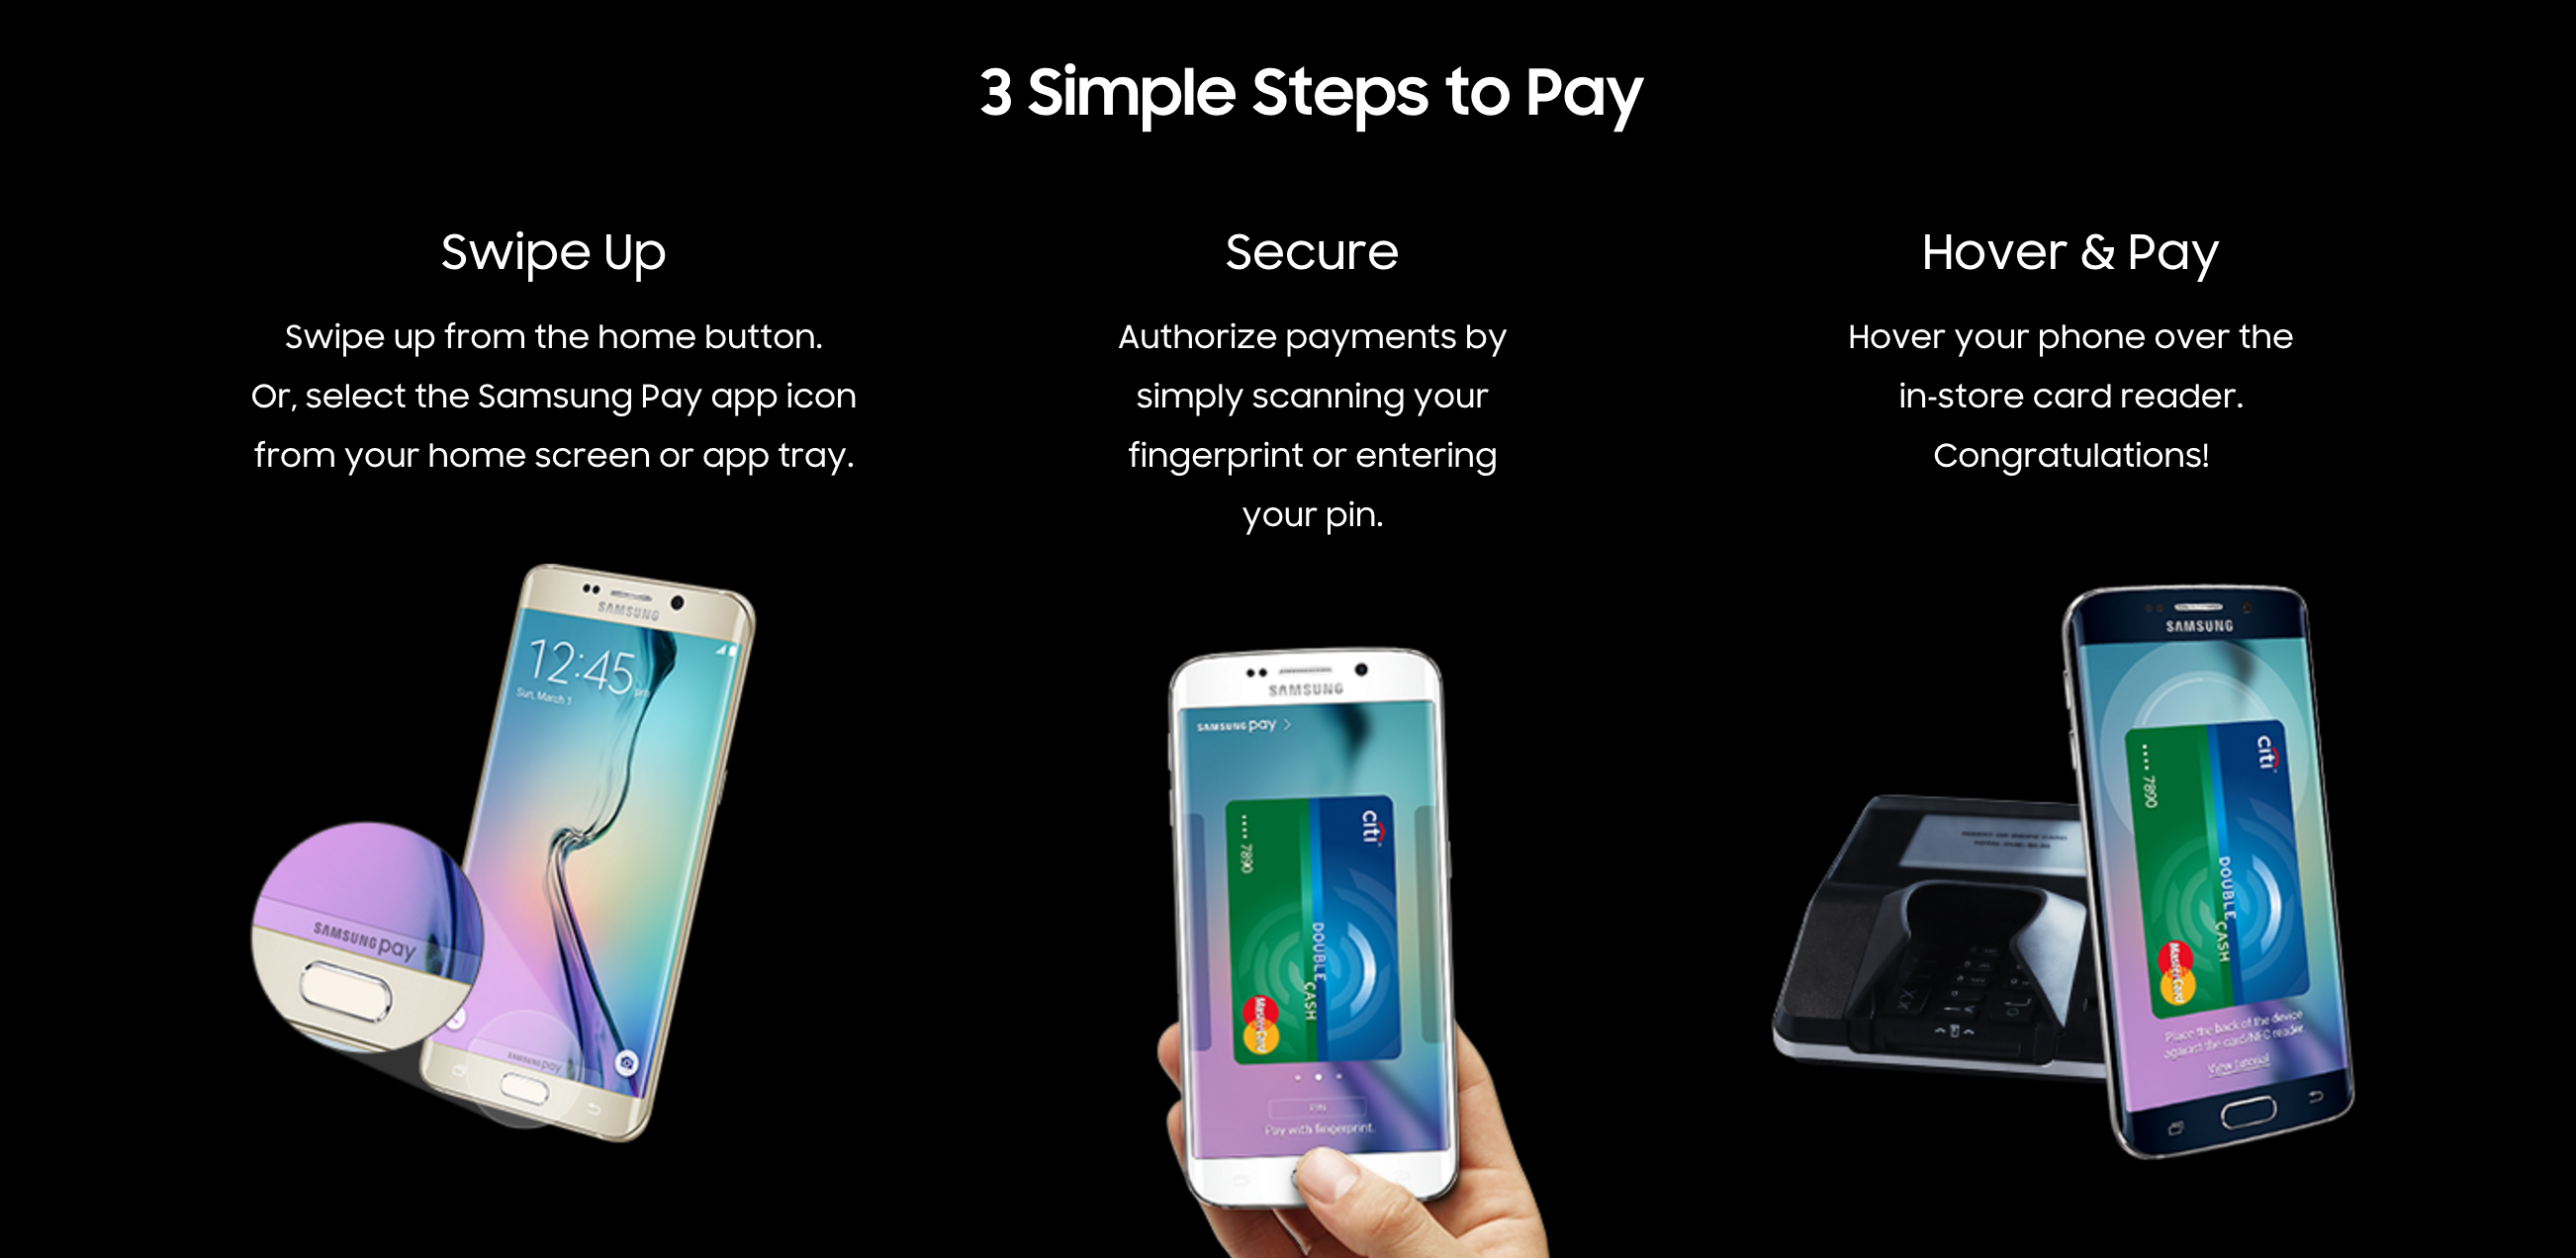 How to set up Samsung Pay and add a credit card on your latest Galaxy device